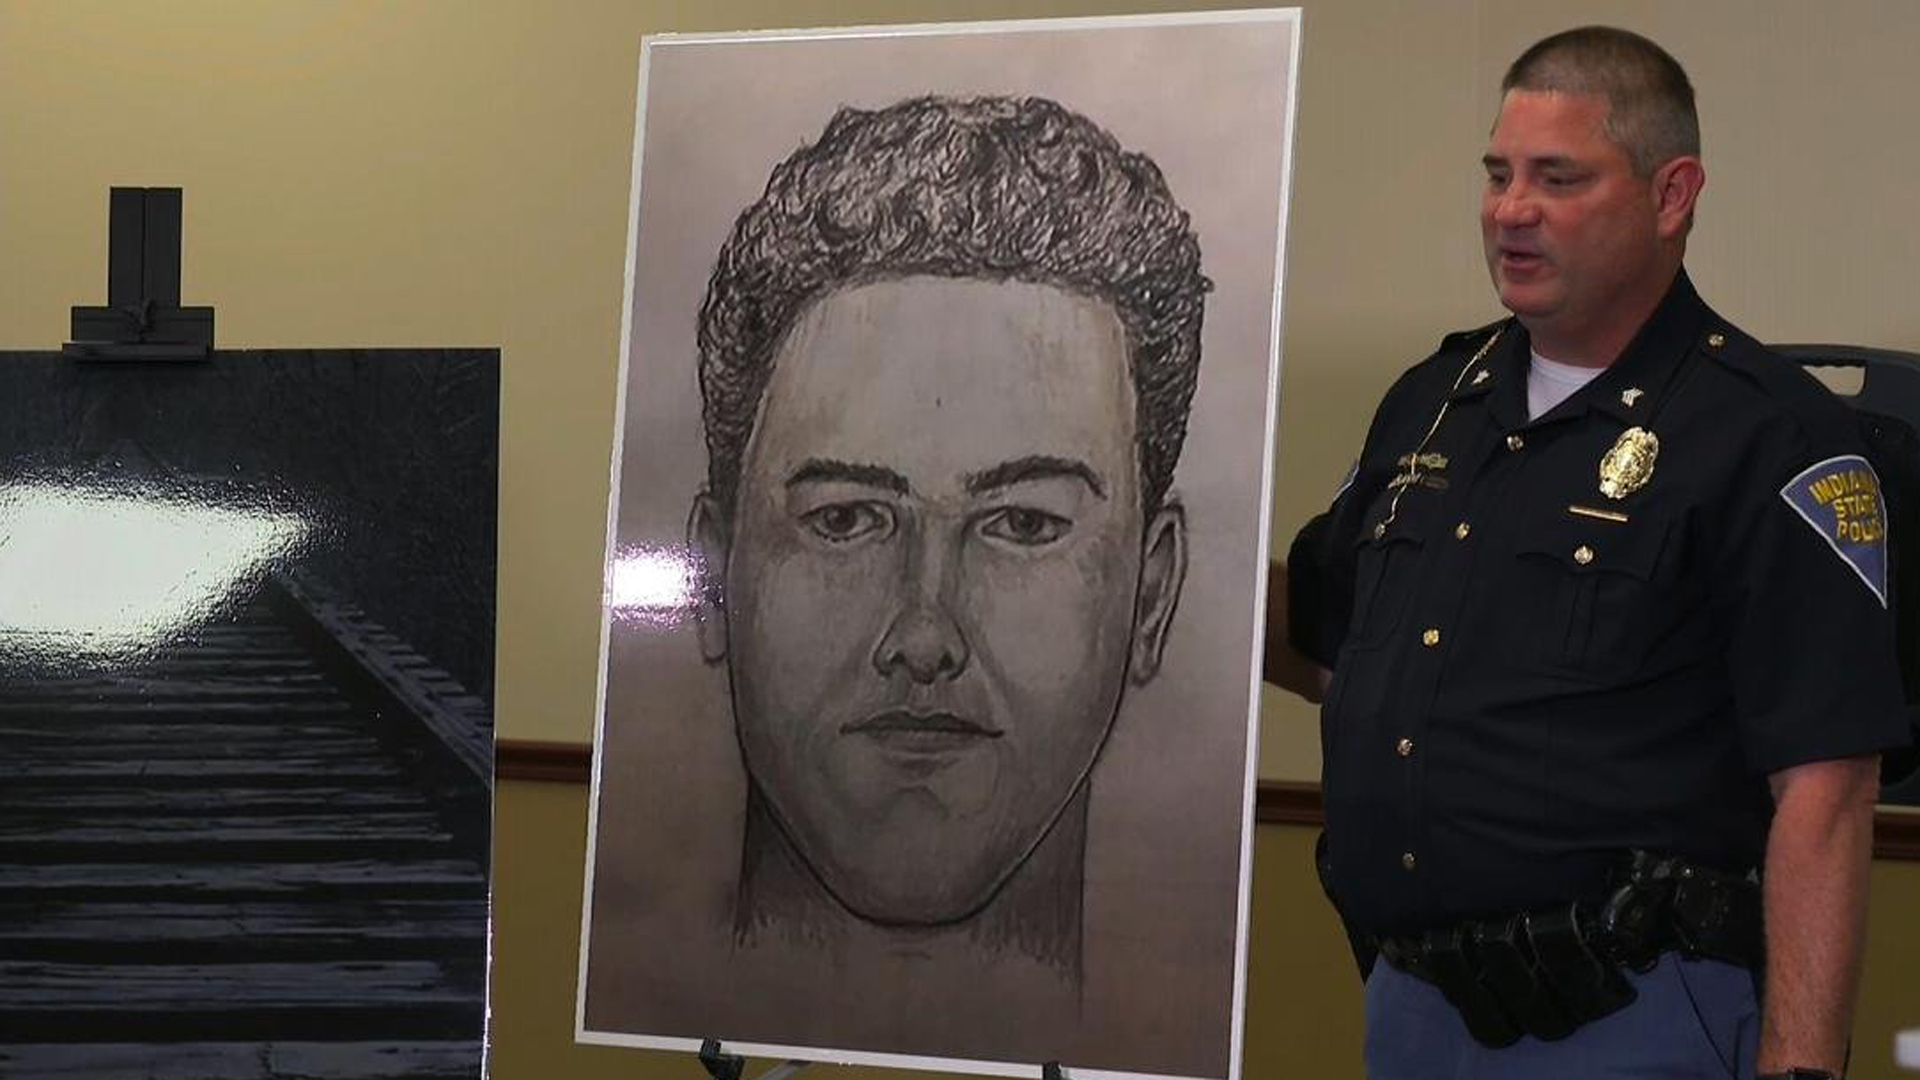 Indiana State Police released a new sketch as the search continued for the man who killed Libby German and Abby Williams in 2017. (Credit: CNN)